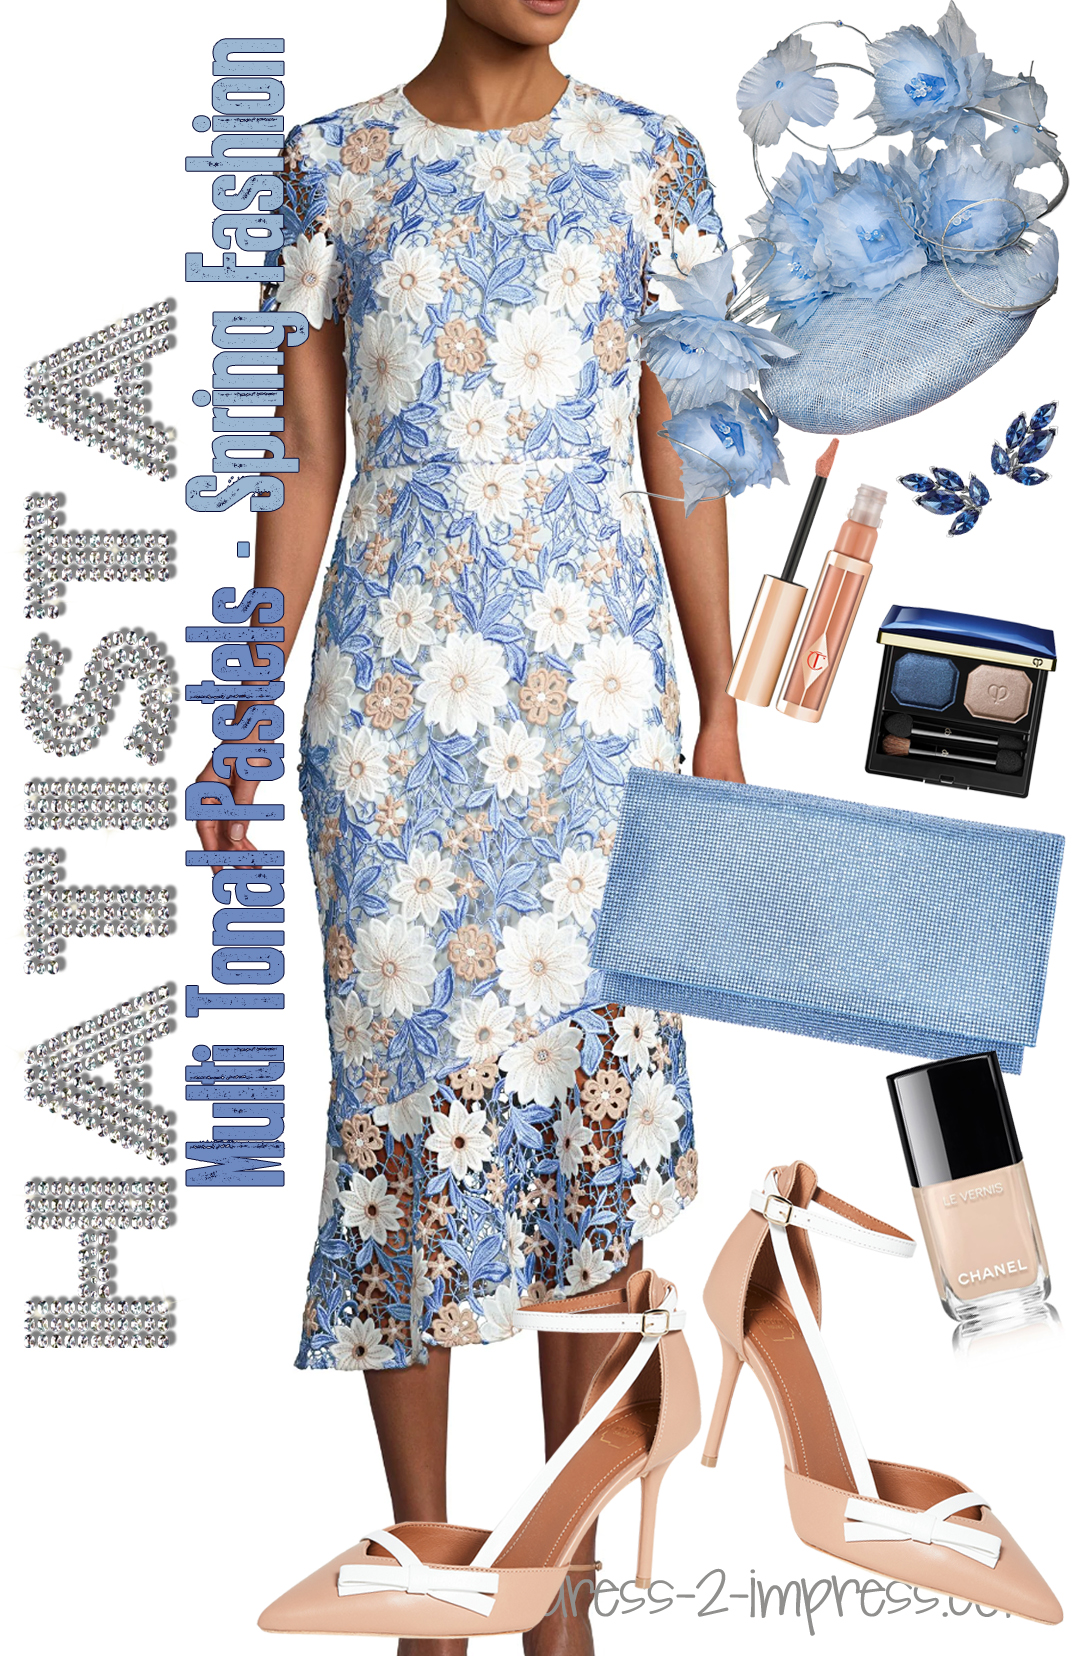 Sky Blue Lace Dress. Outfits with Pastel Blue. What to wear to the Kentucky Derby. Outfits for Royal Ascot. Pastel outfits for Melbourne Cup. What to wear to the Dubai World Cup - Need outfit inspiration for summer weddings? What to wear for a Day at the Races